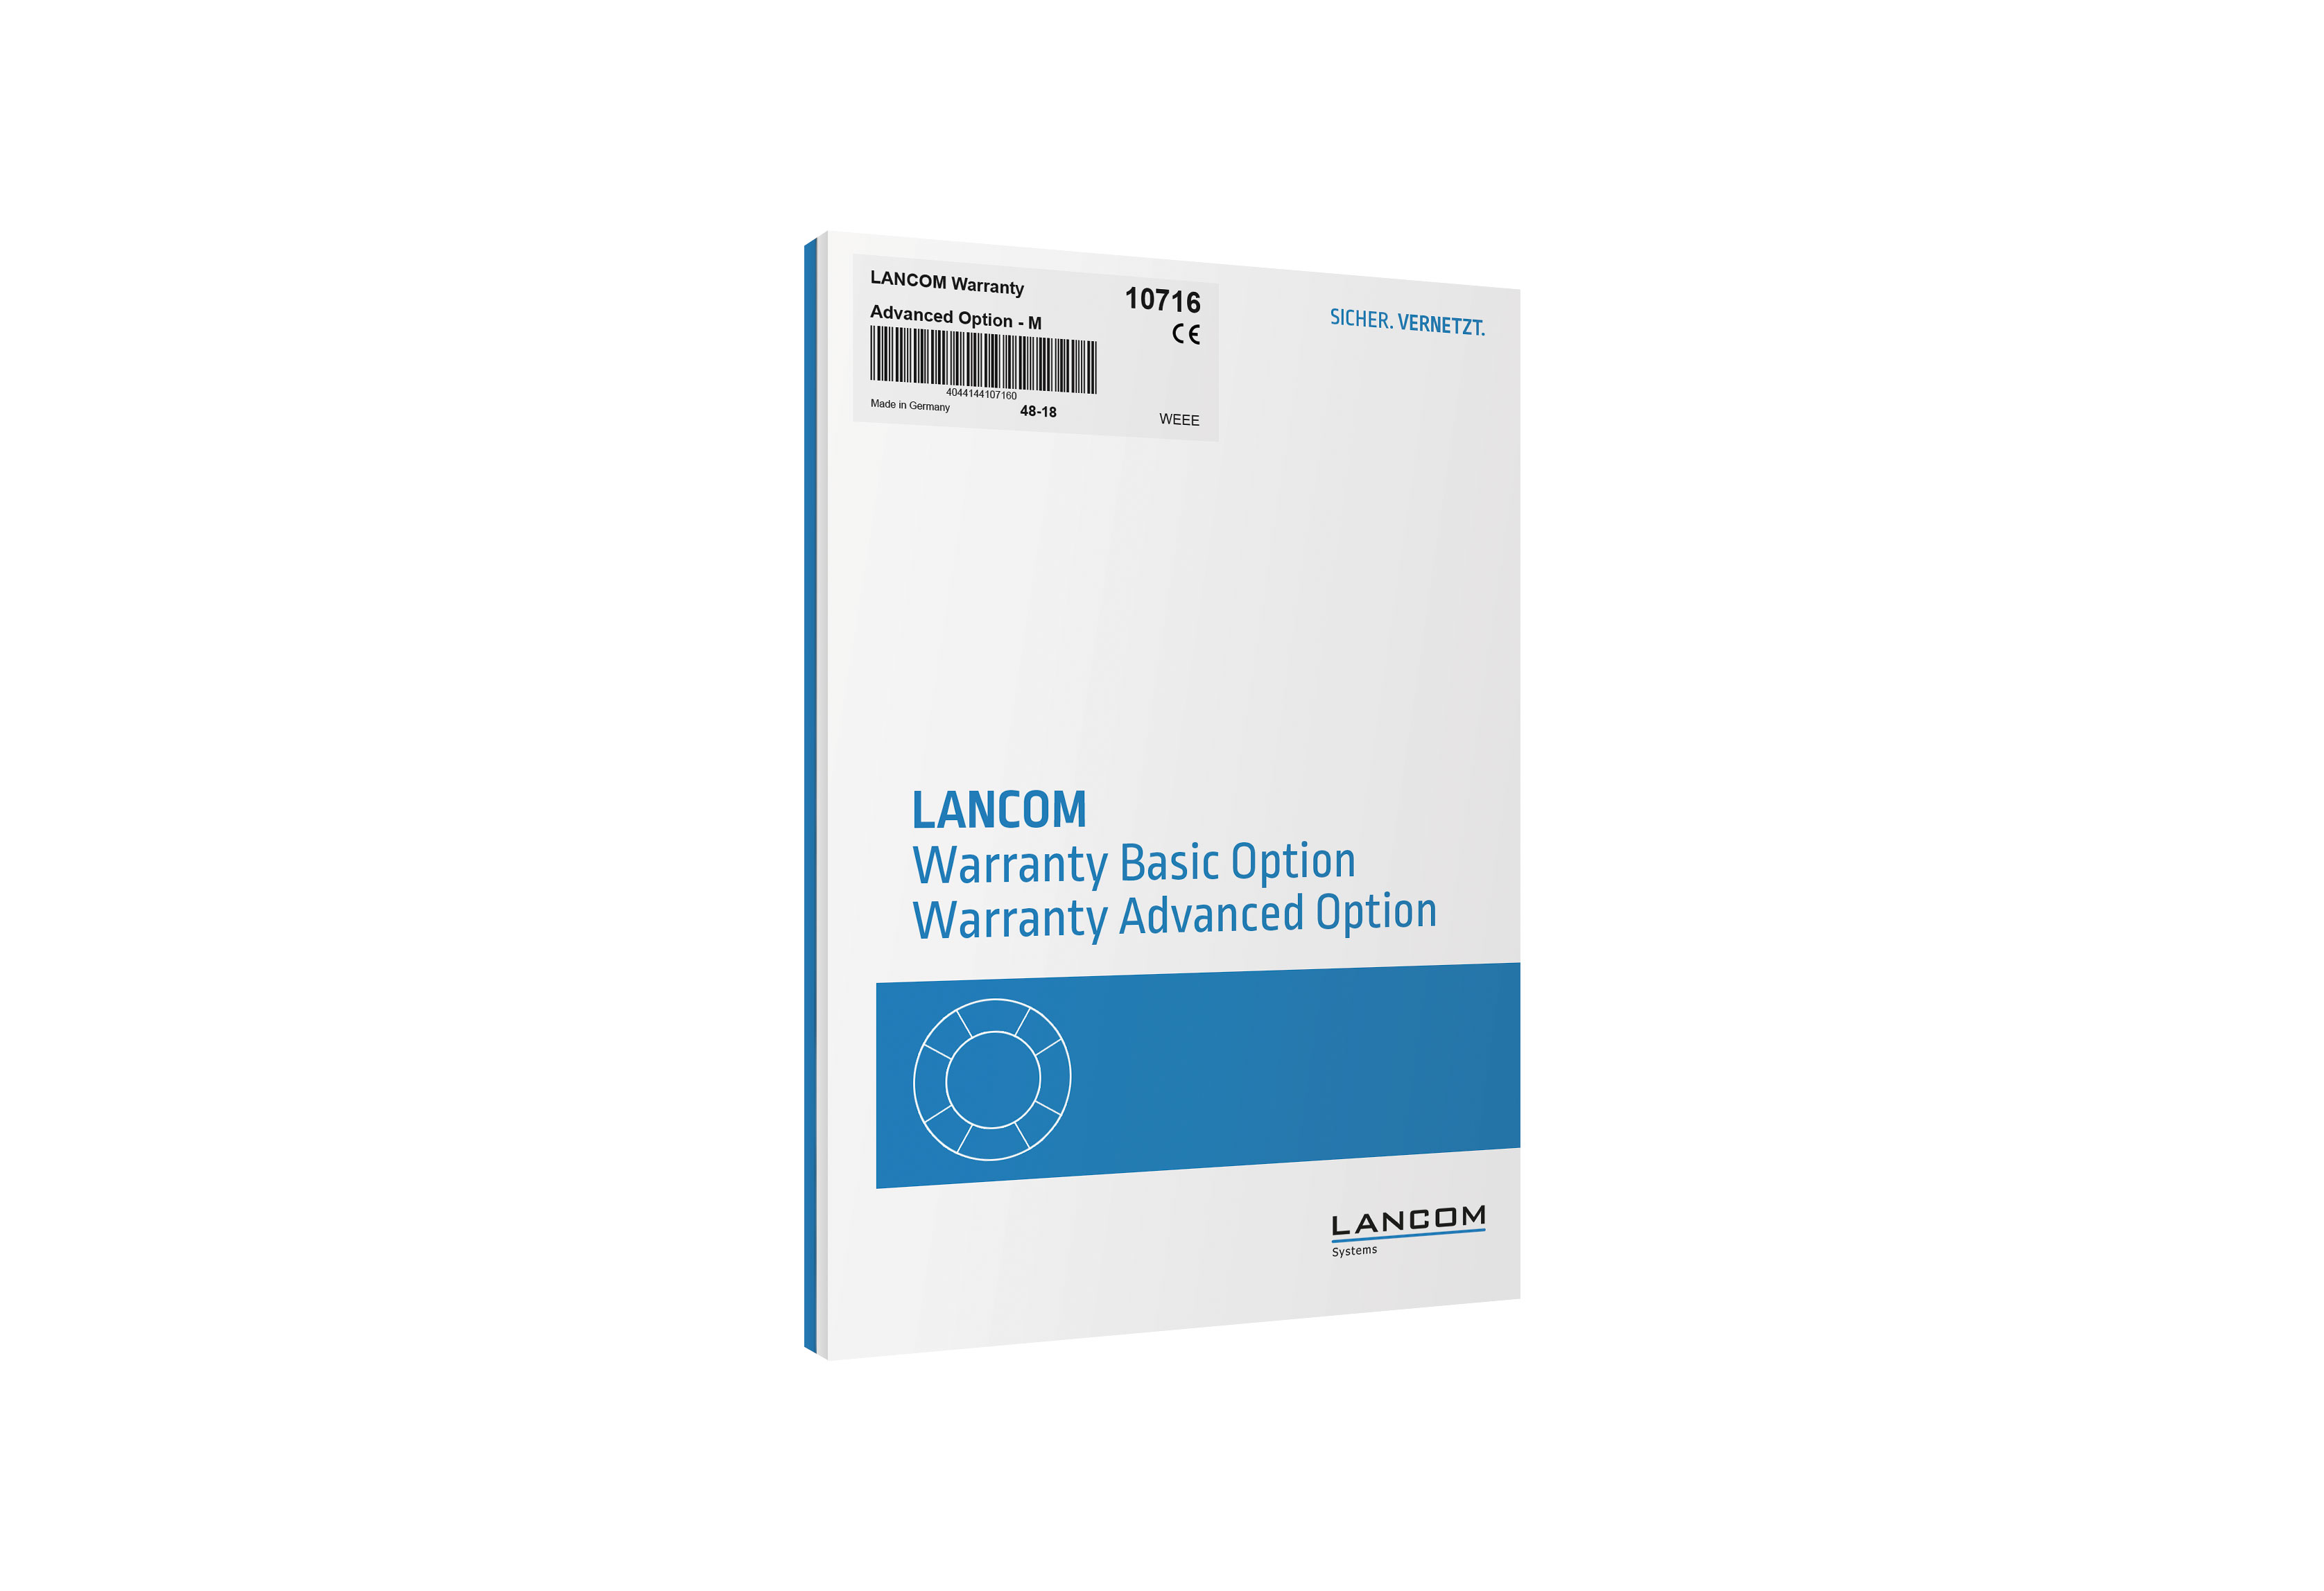 Produktbild - LANCOM Warranty Advanced Option - M